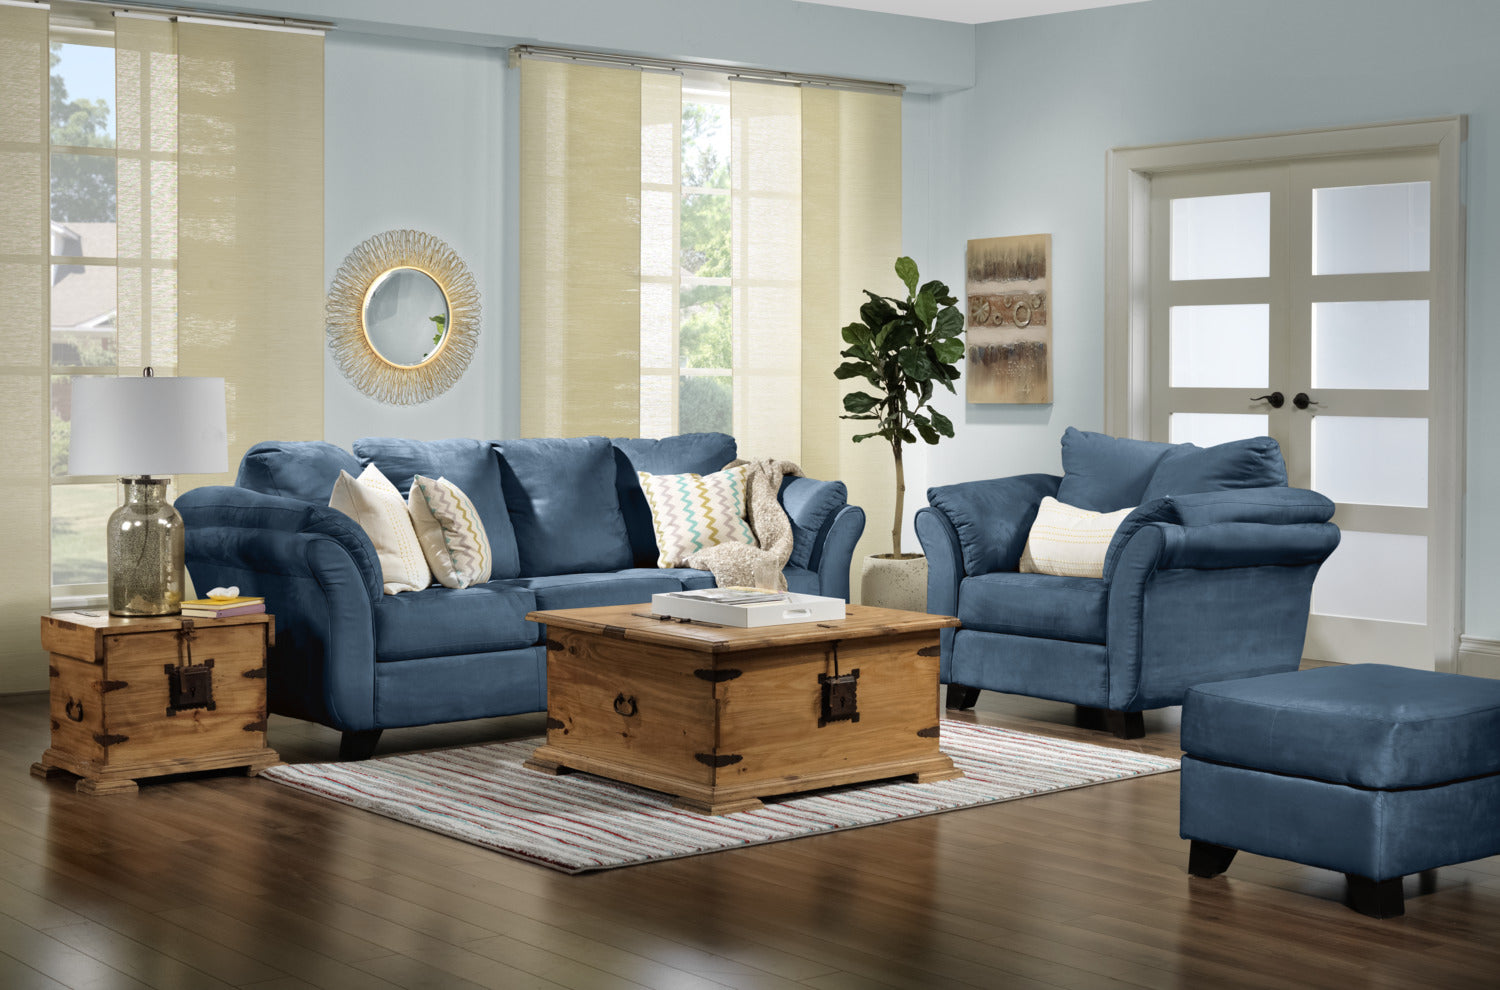 Collier Sofa Loveseat And Chair Set Cobalt Blue Leon S